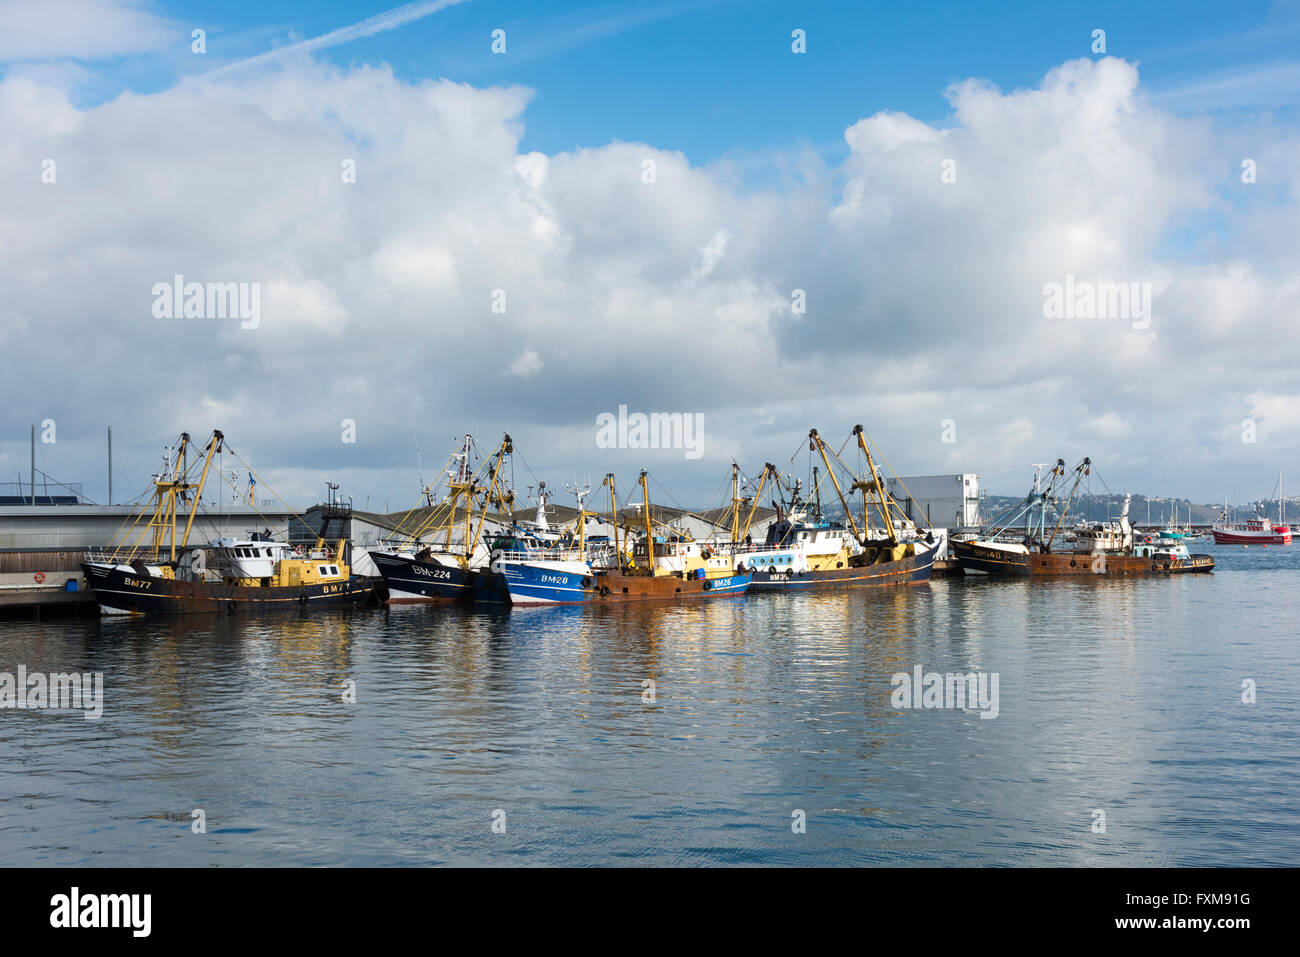 Commercial fishing boats moored at the docks in Brixham Devon UK - Stock Image